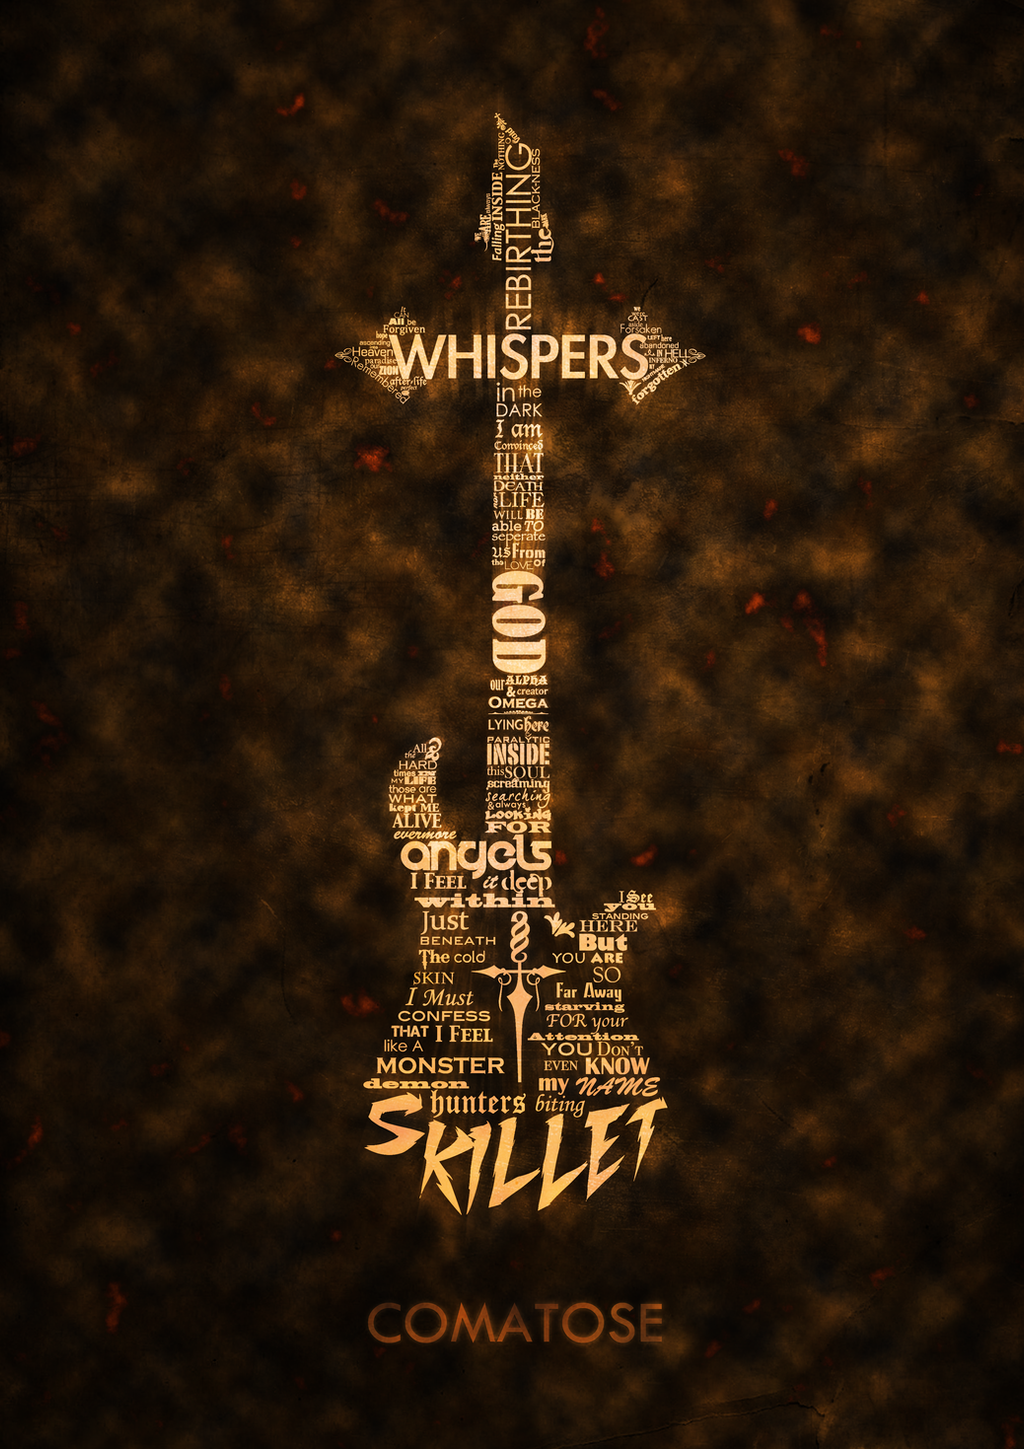 skillet cover typography by numb5kull on deviantart